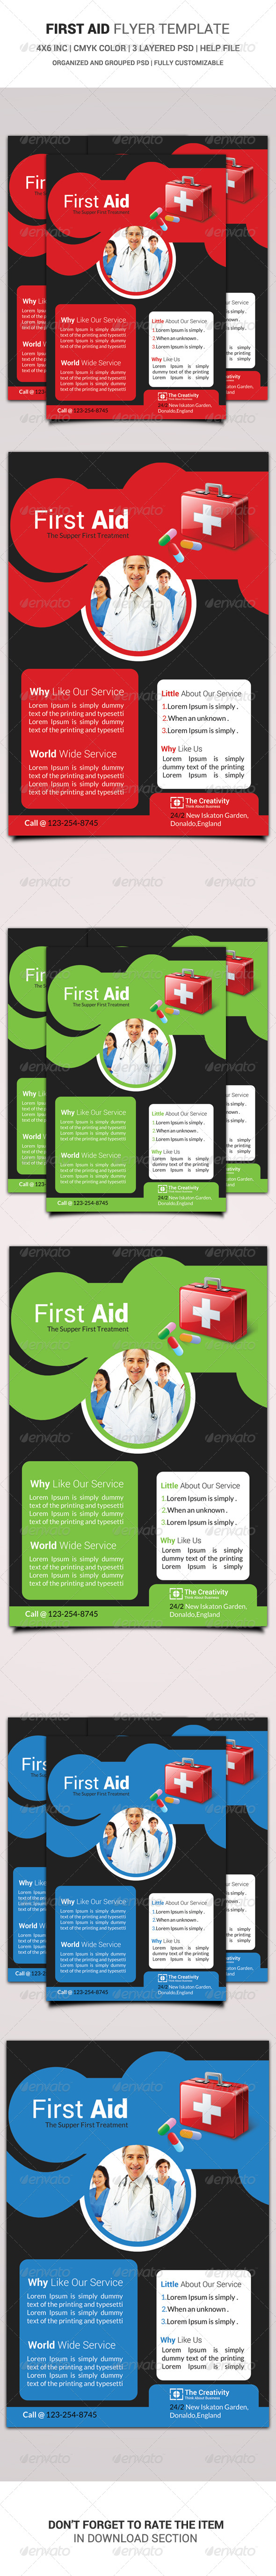 First Aid Flyer Template - Corporate Flyers